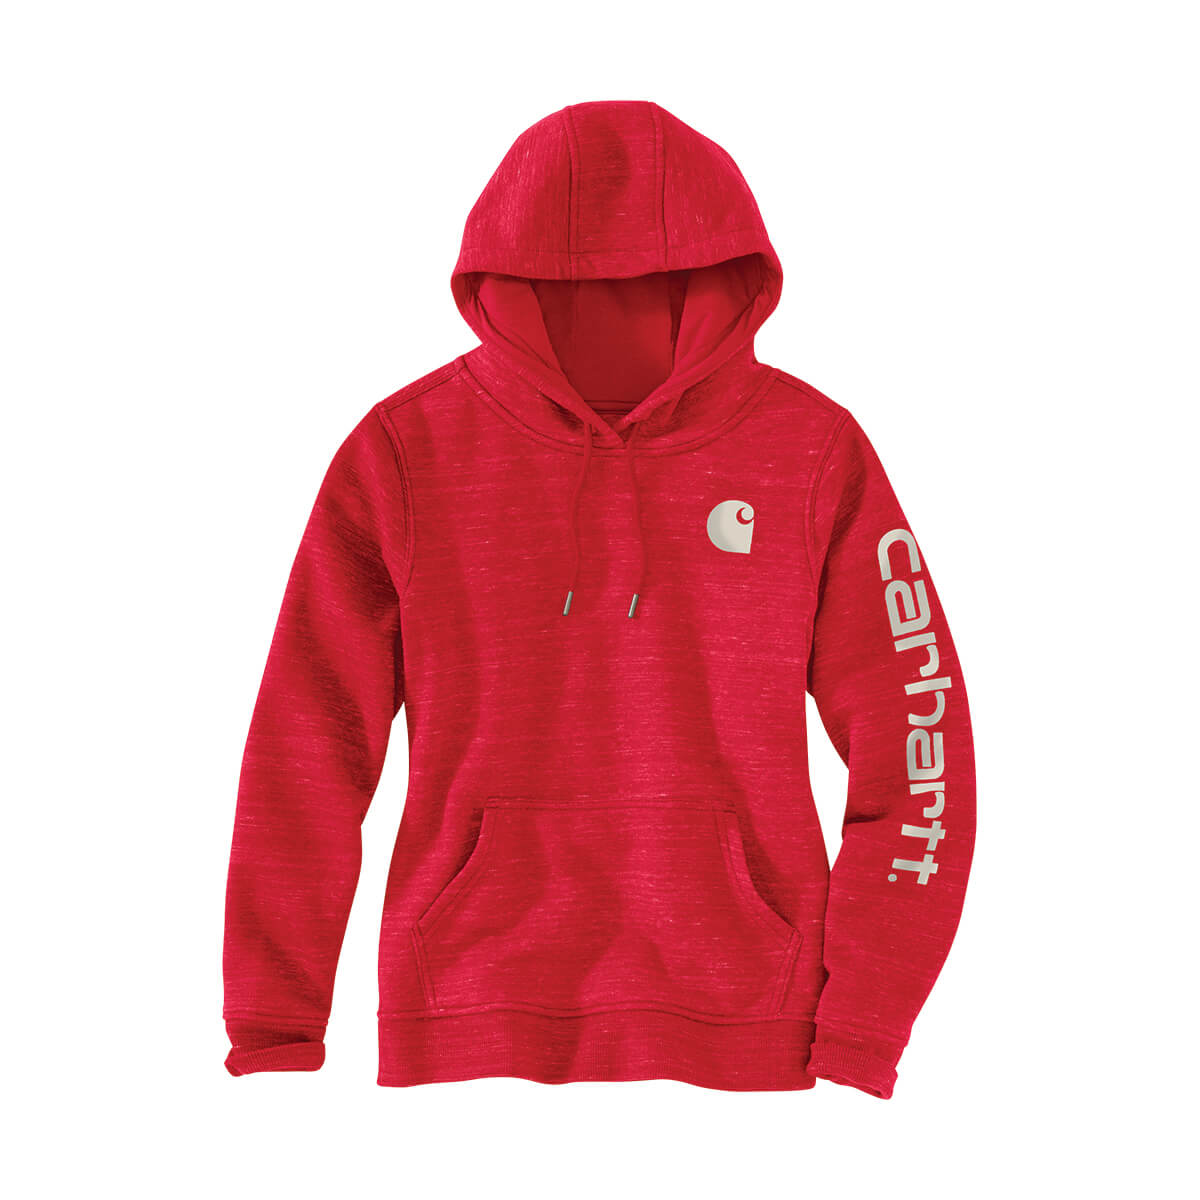 Women's Pullover Hoodie with Sleeve Logo